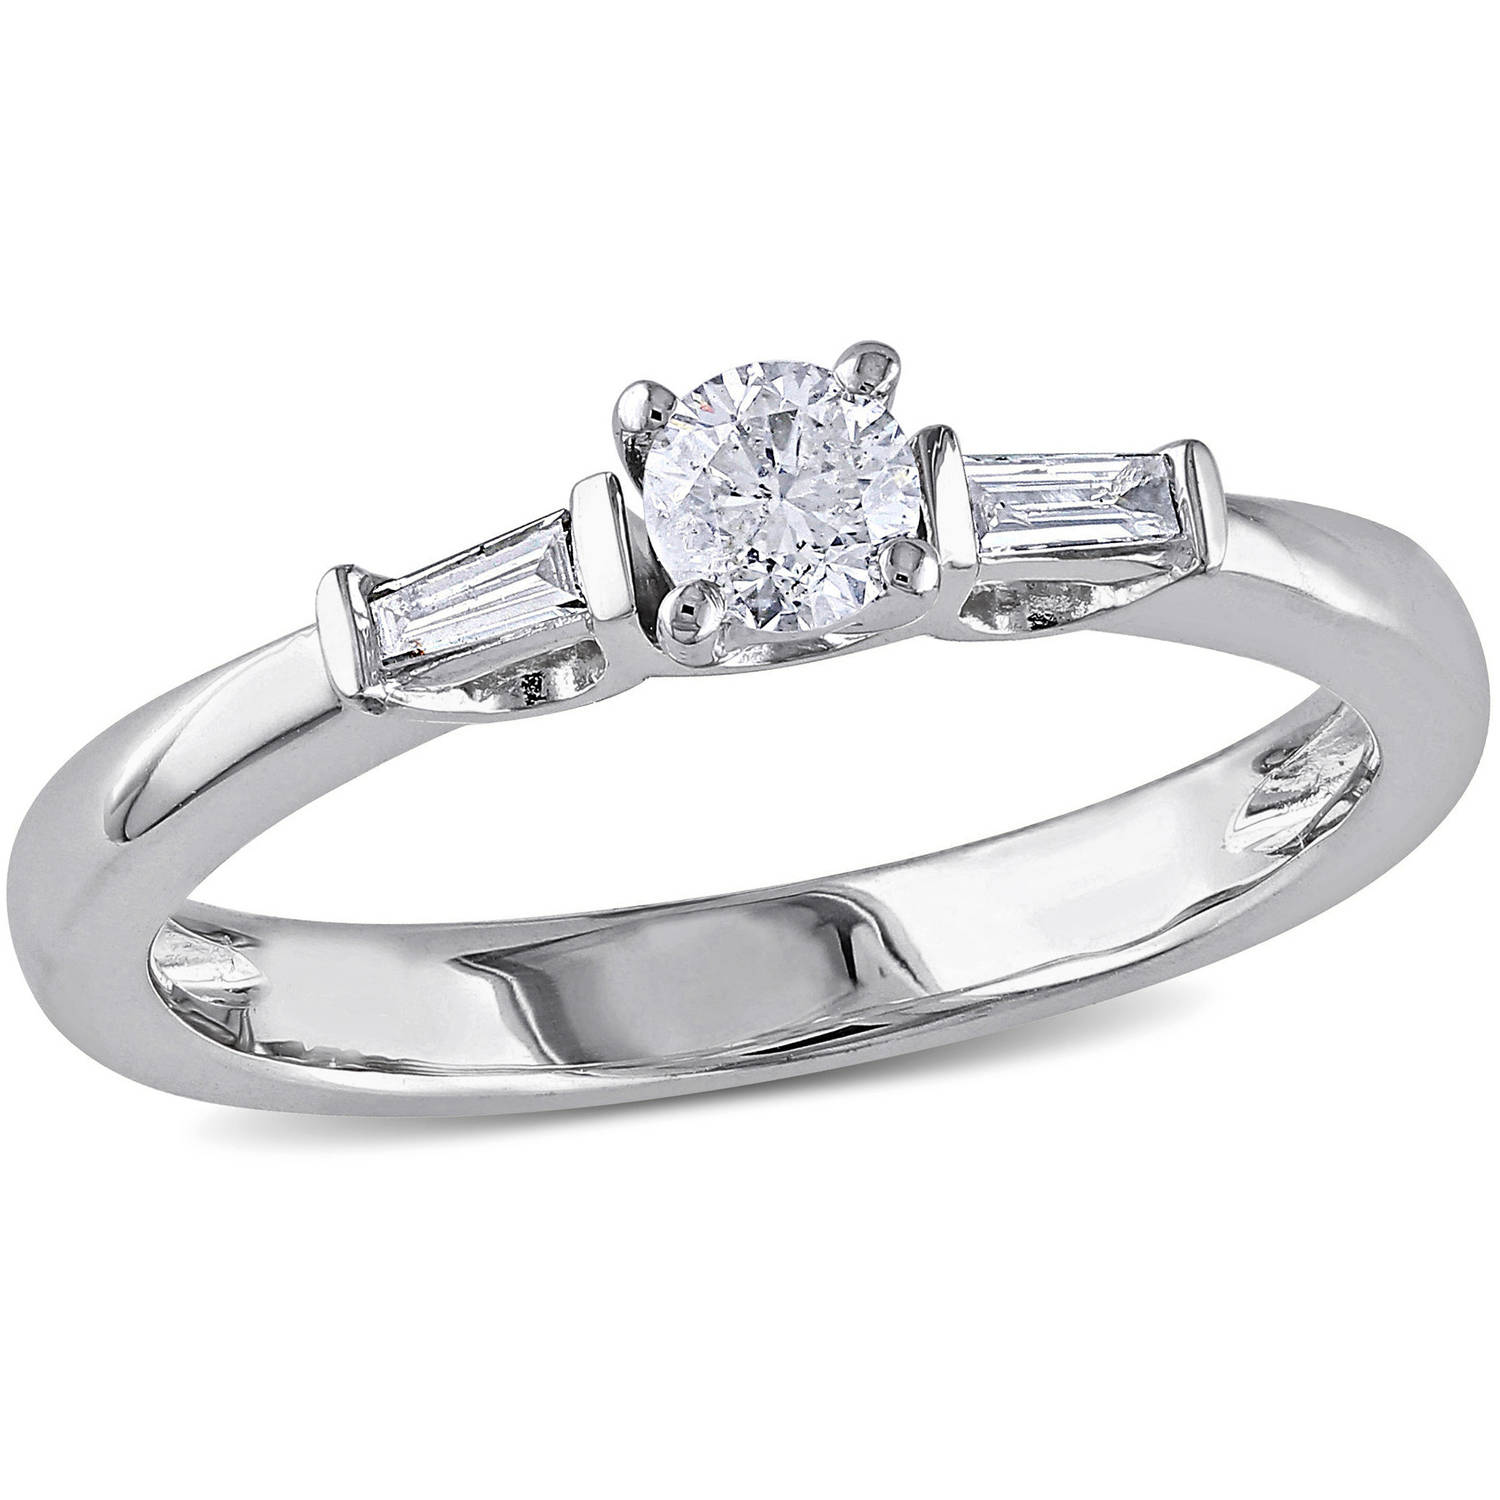 1 3 Carat T W Round and Tapered Baguette Cut Diamond Engagement